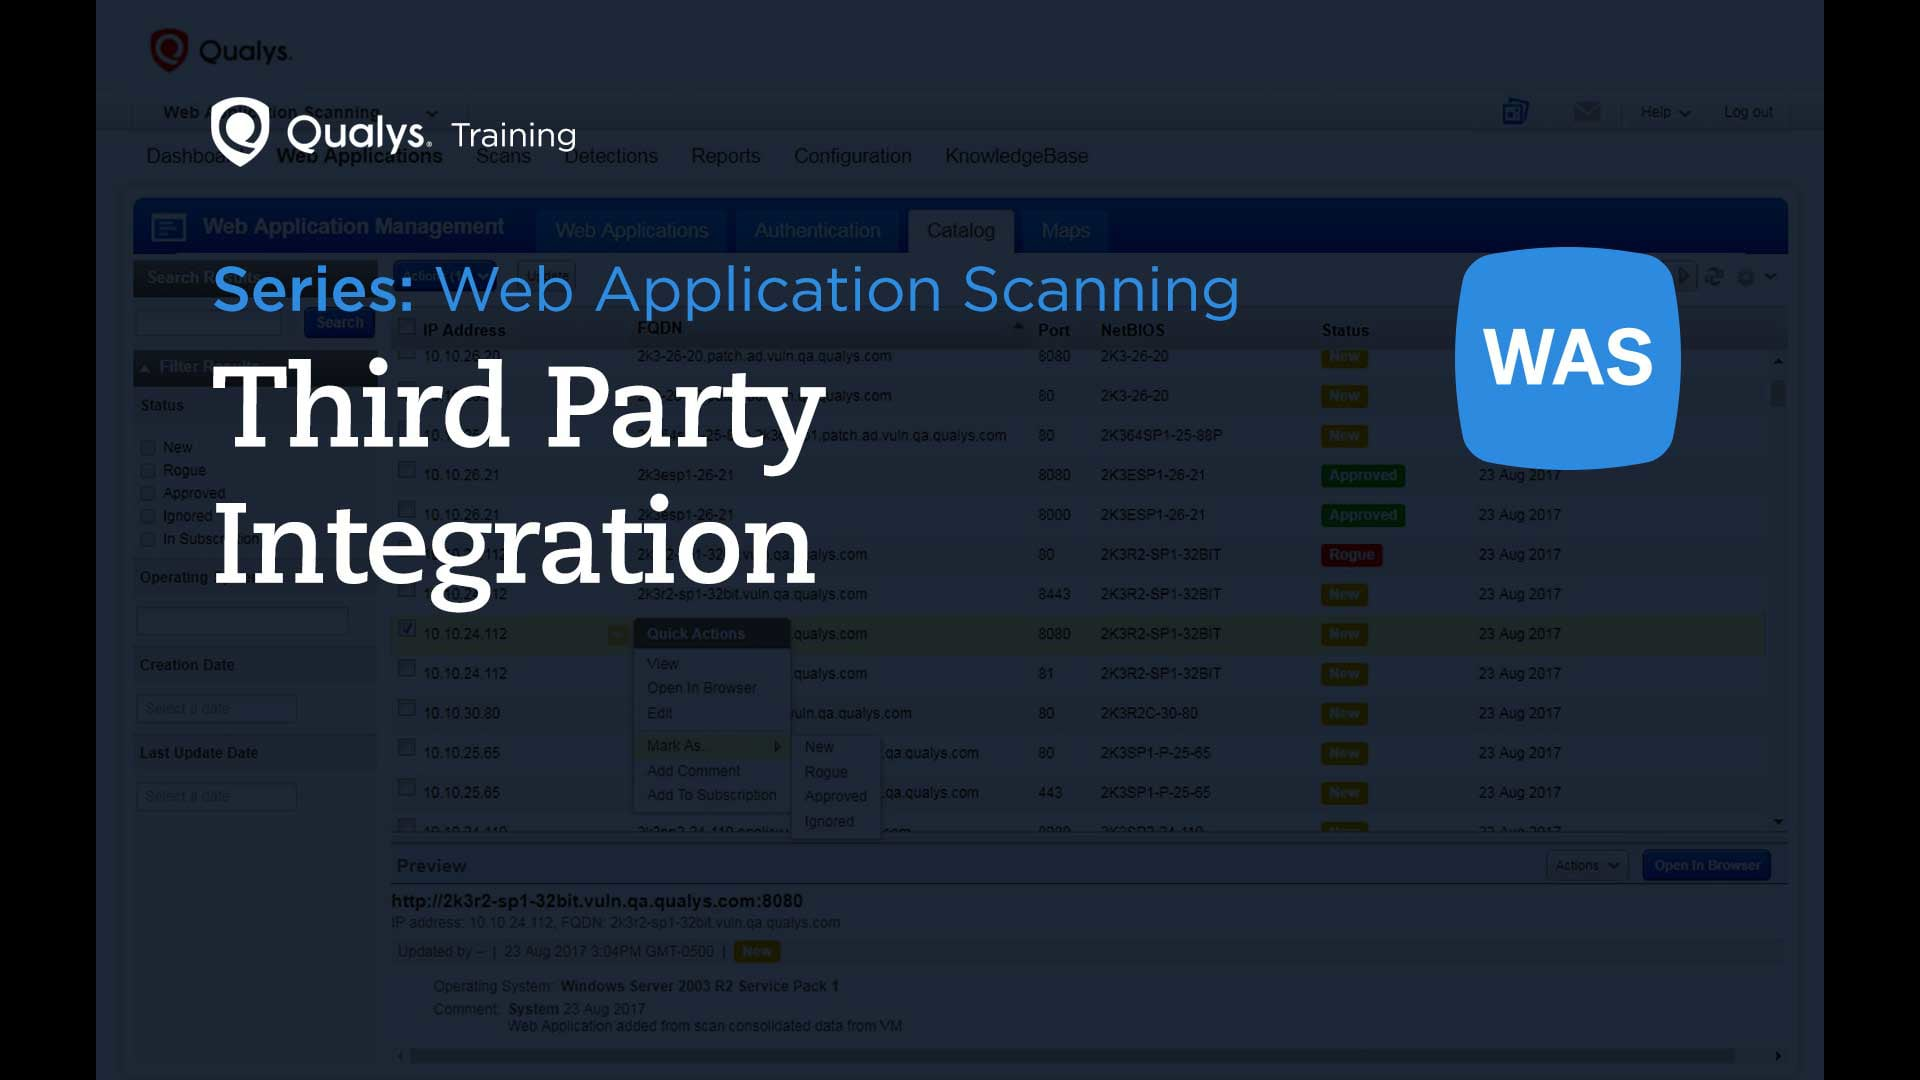 Third Party Integration